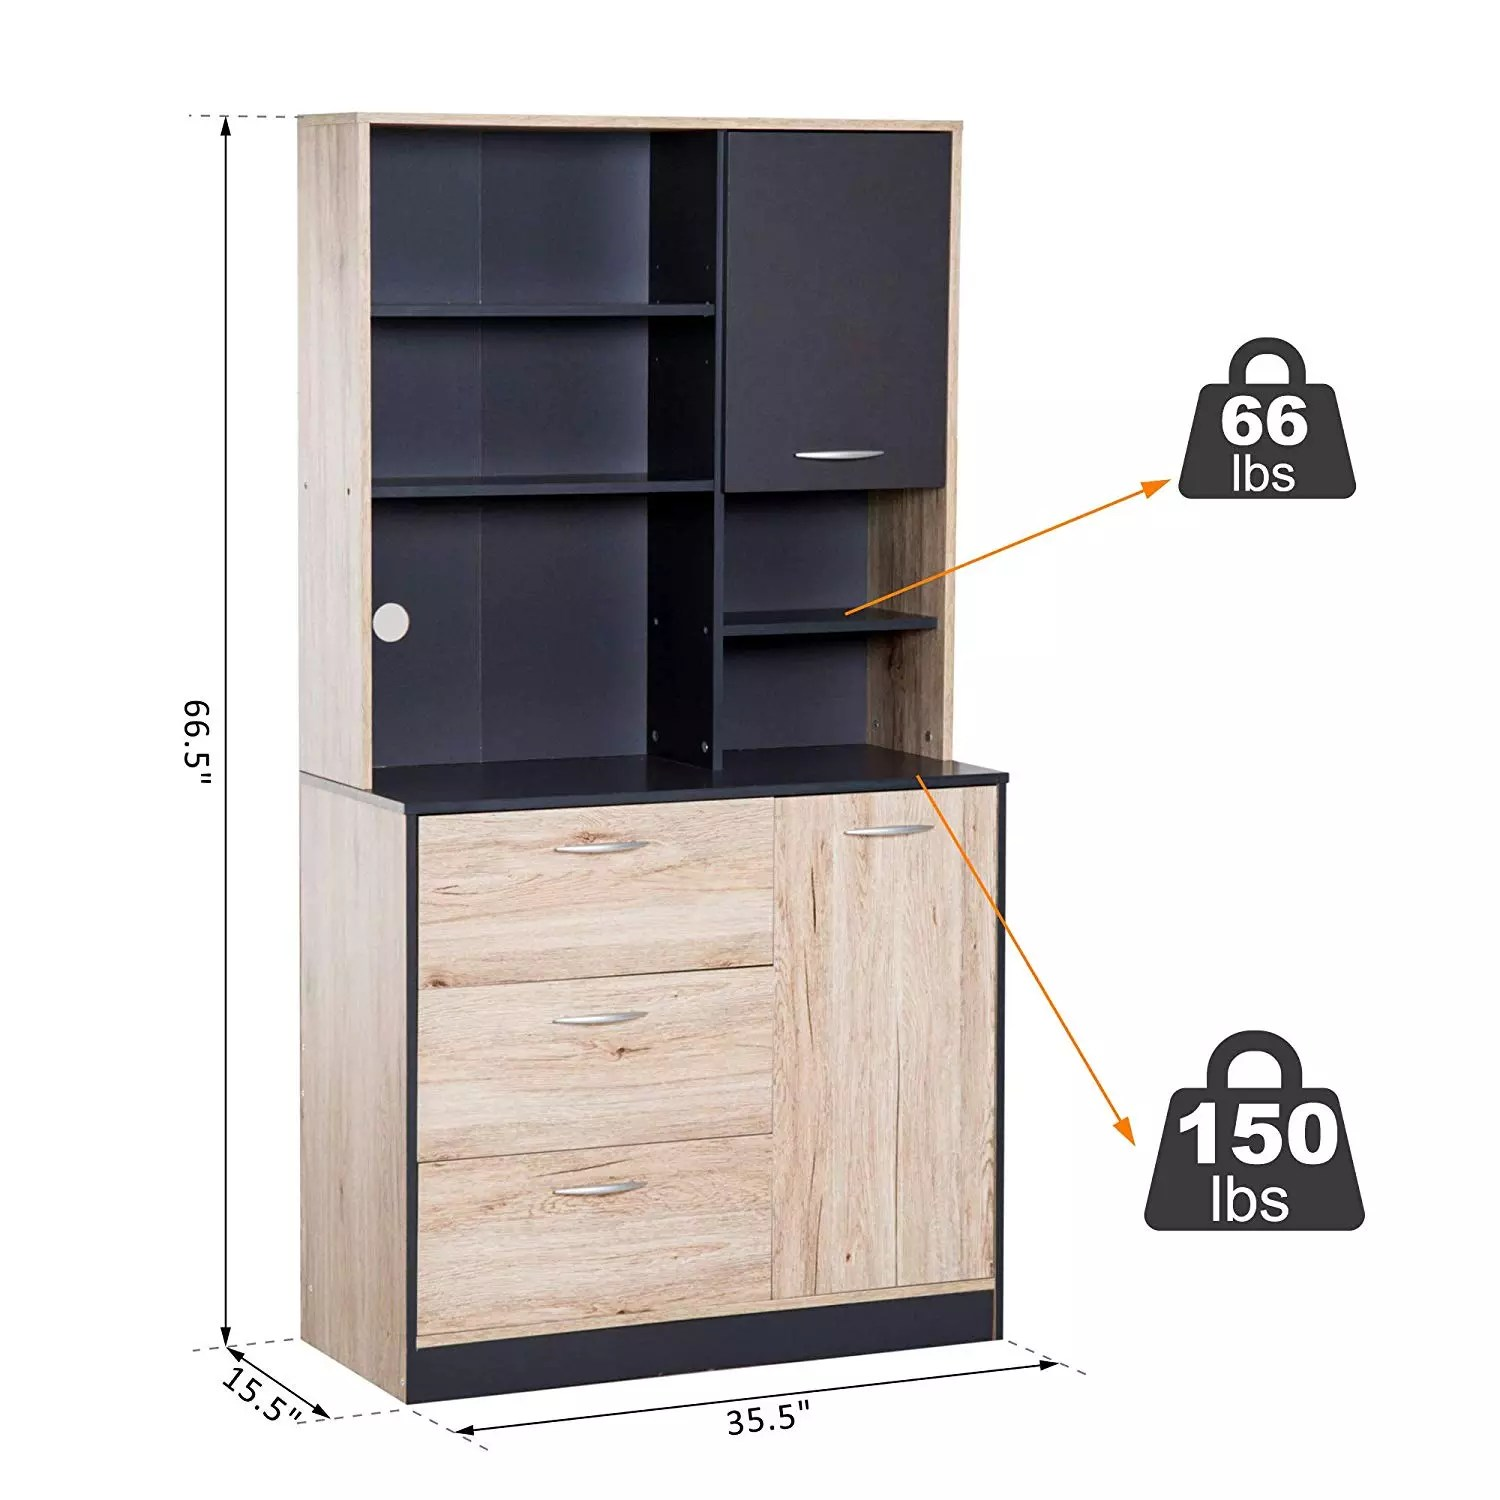 e1 grade engineered wood modern freestanding kitchen buffet cabinet design with microwave storage hutch black and oak buy kitchen cabinet